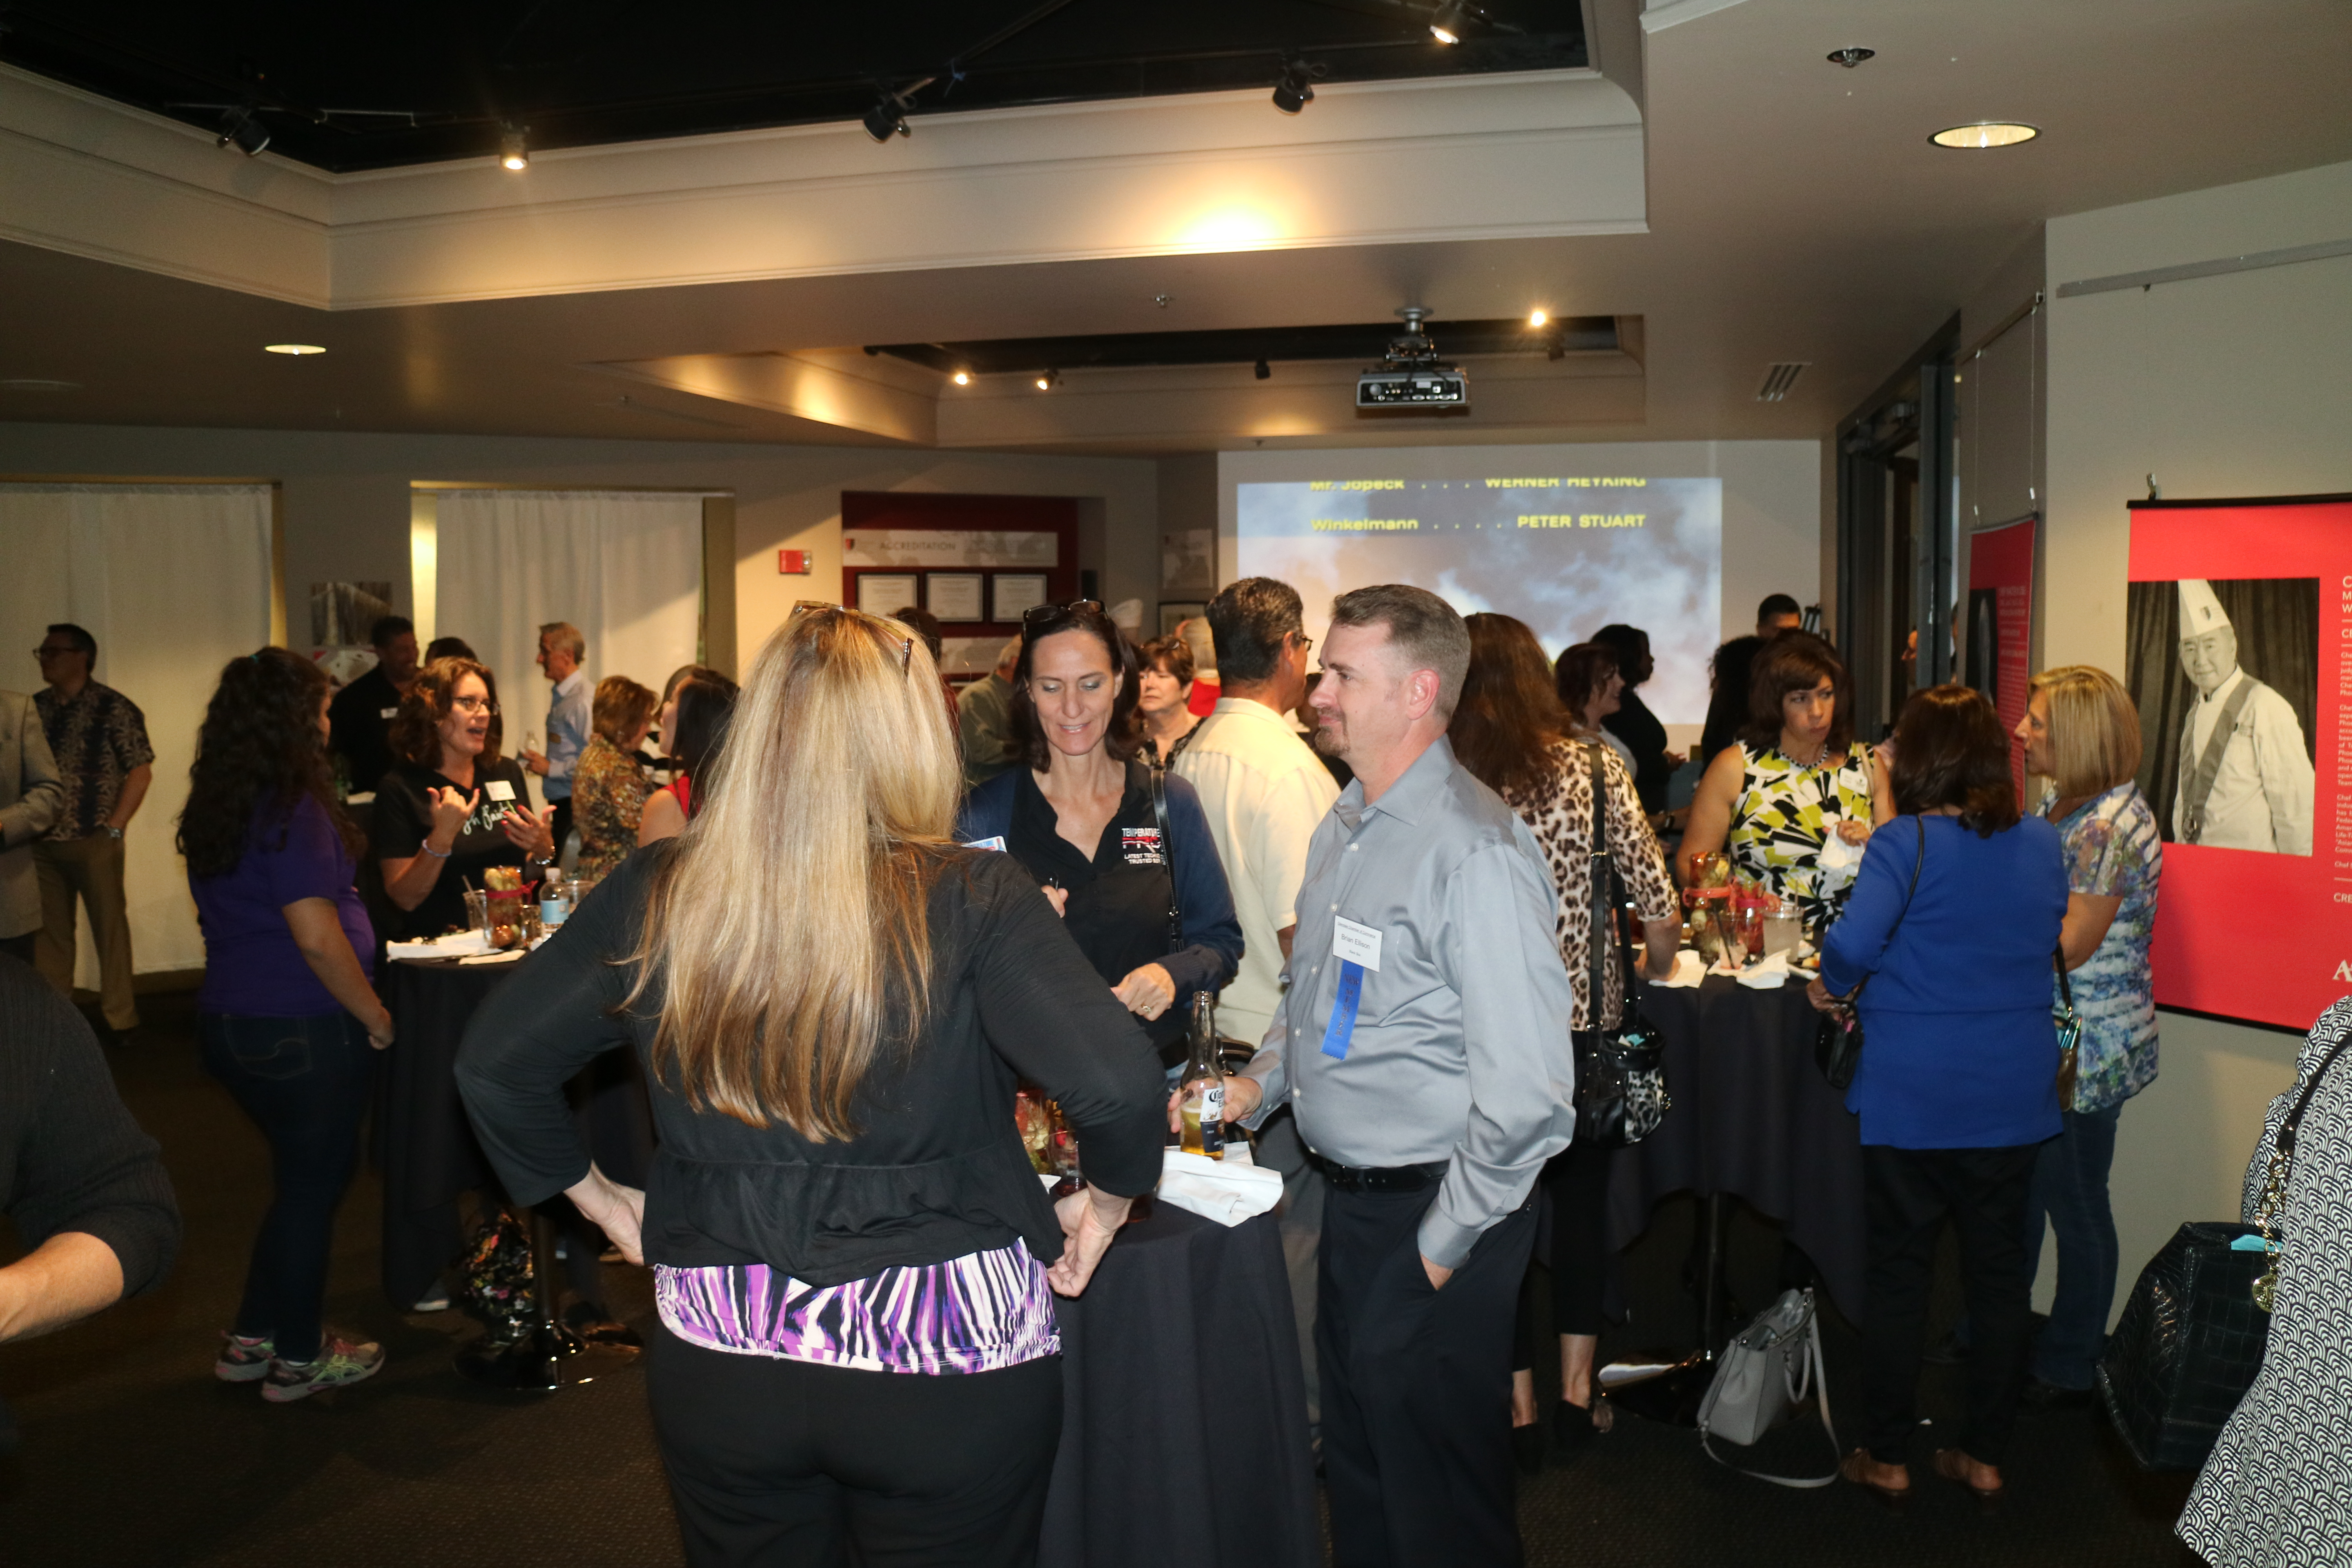 AiPX Chamber of Commerce Event Photo 1